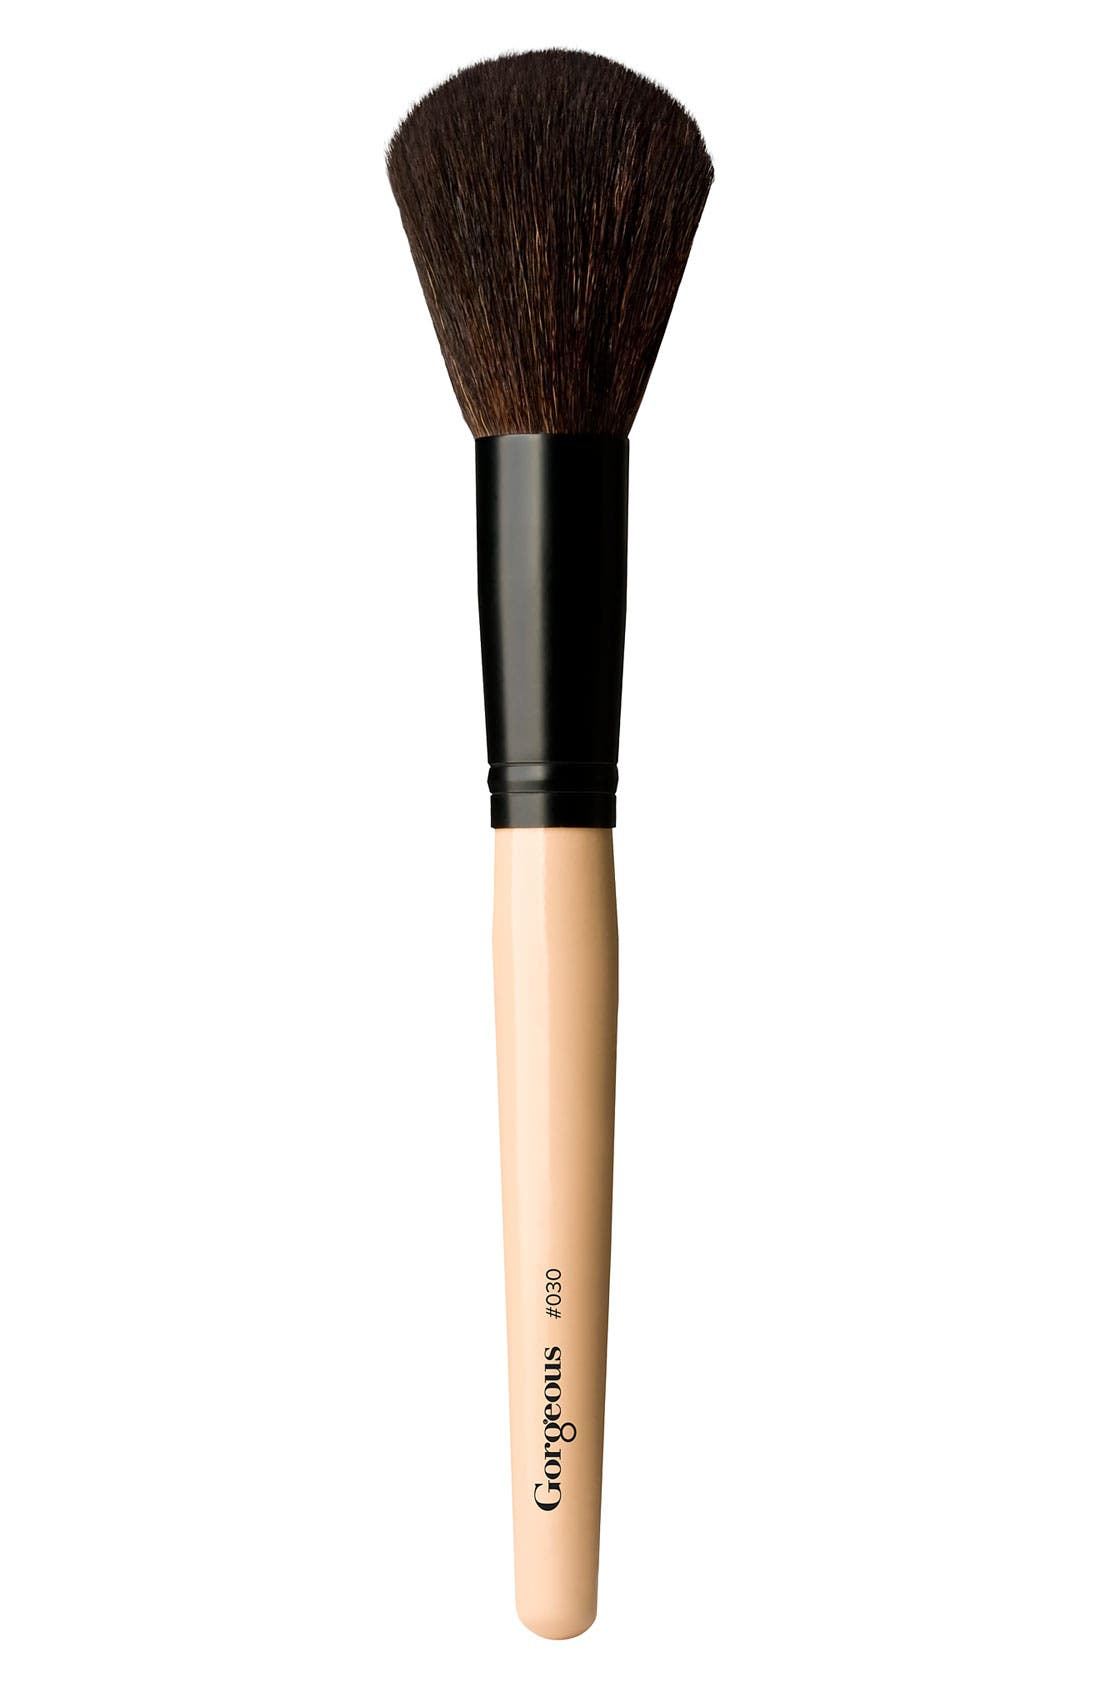 Gorgeous Cosmetics '030' Large Powder Brush